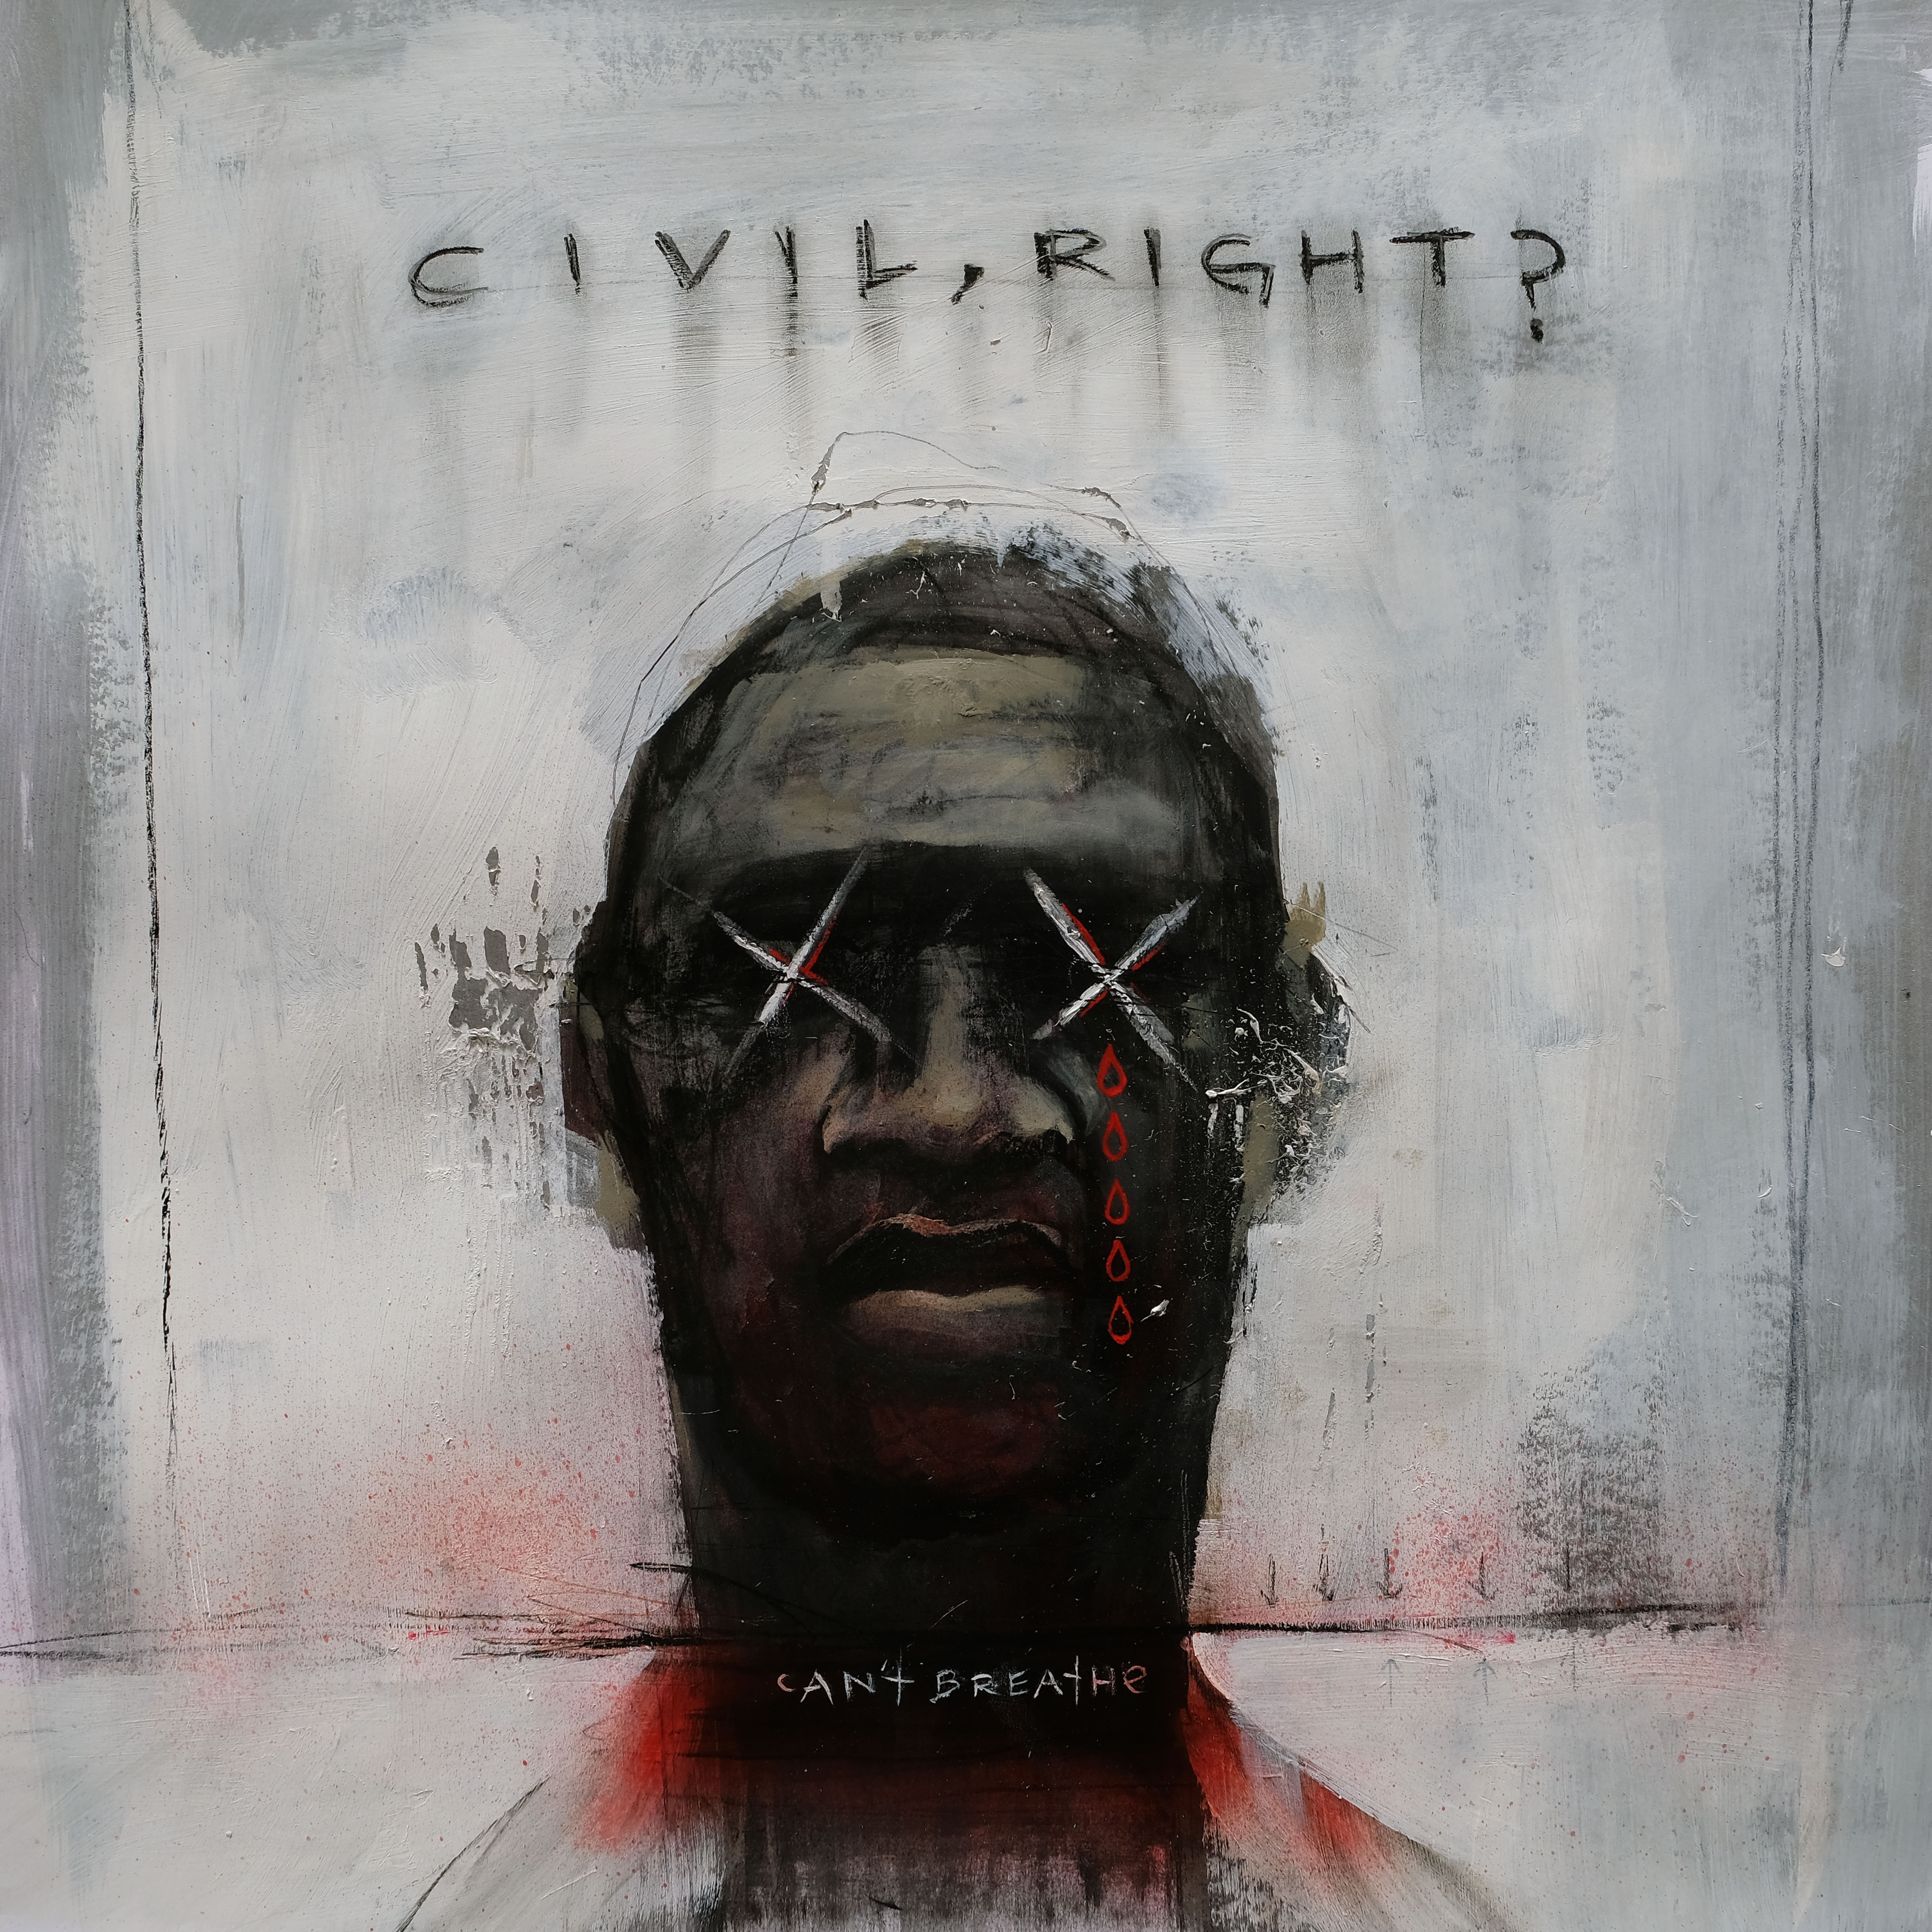 civilright